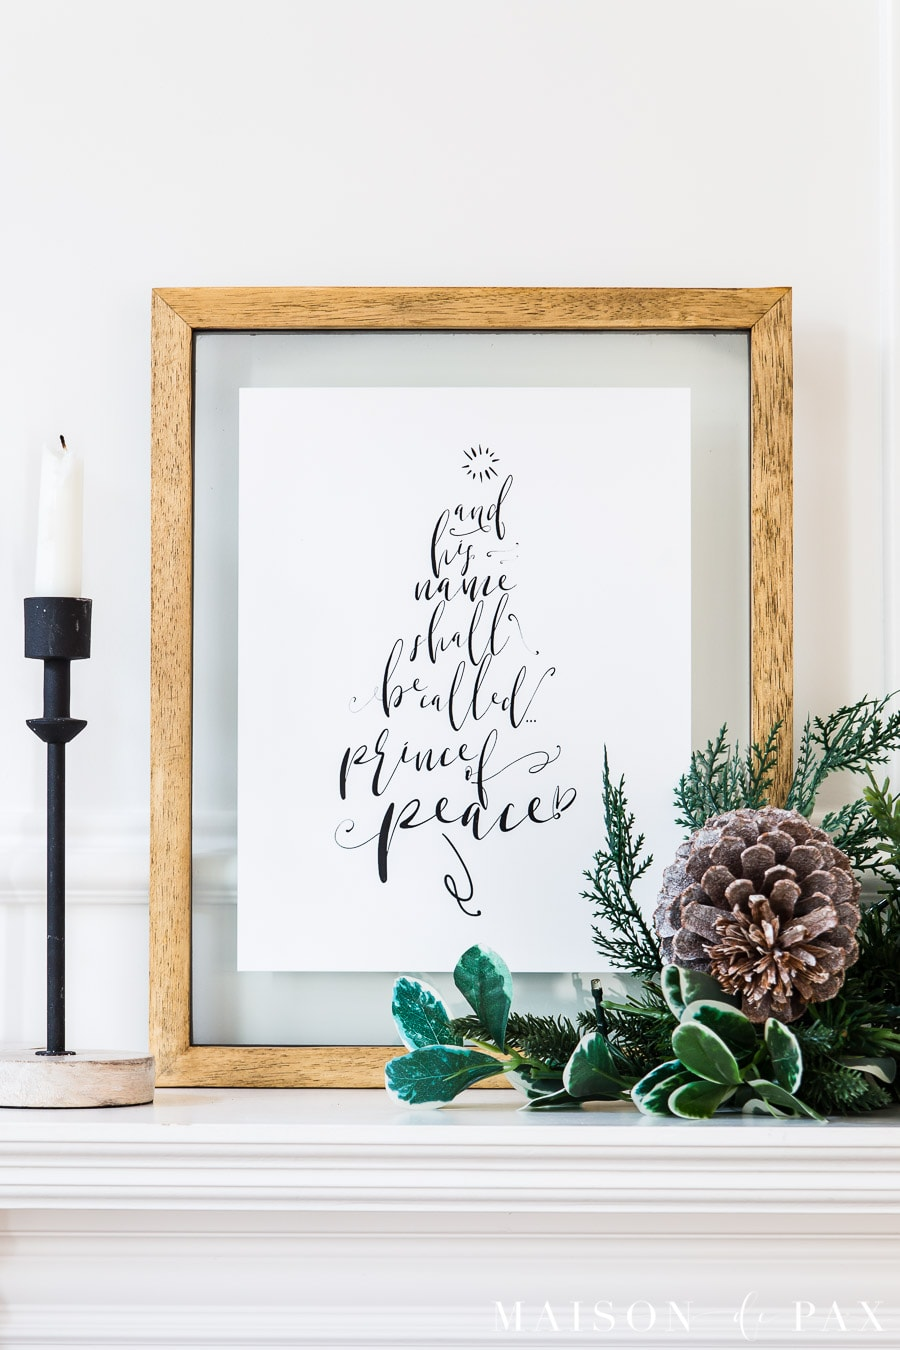 and his name shall be called prince of peace printable | Maison de Pax